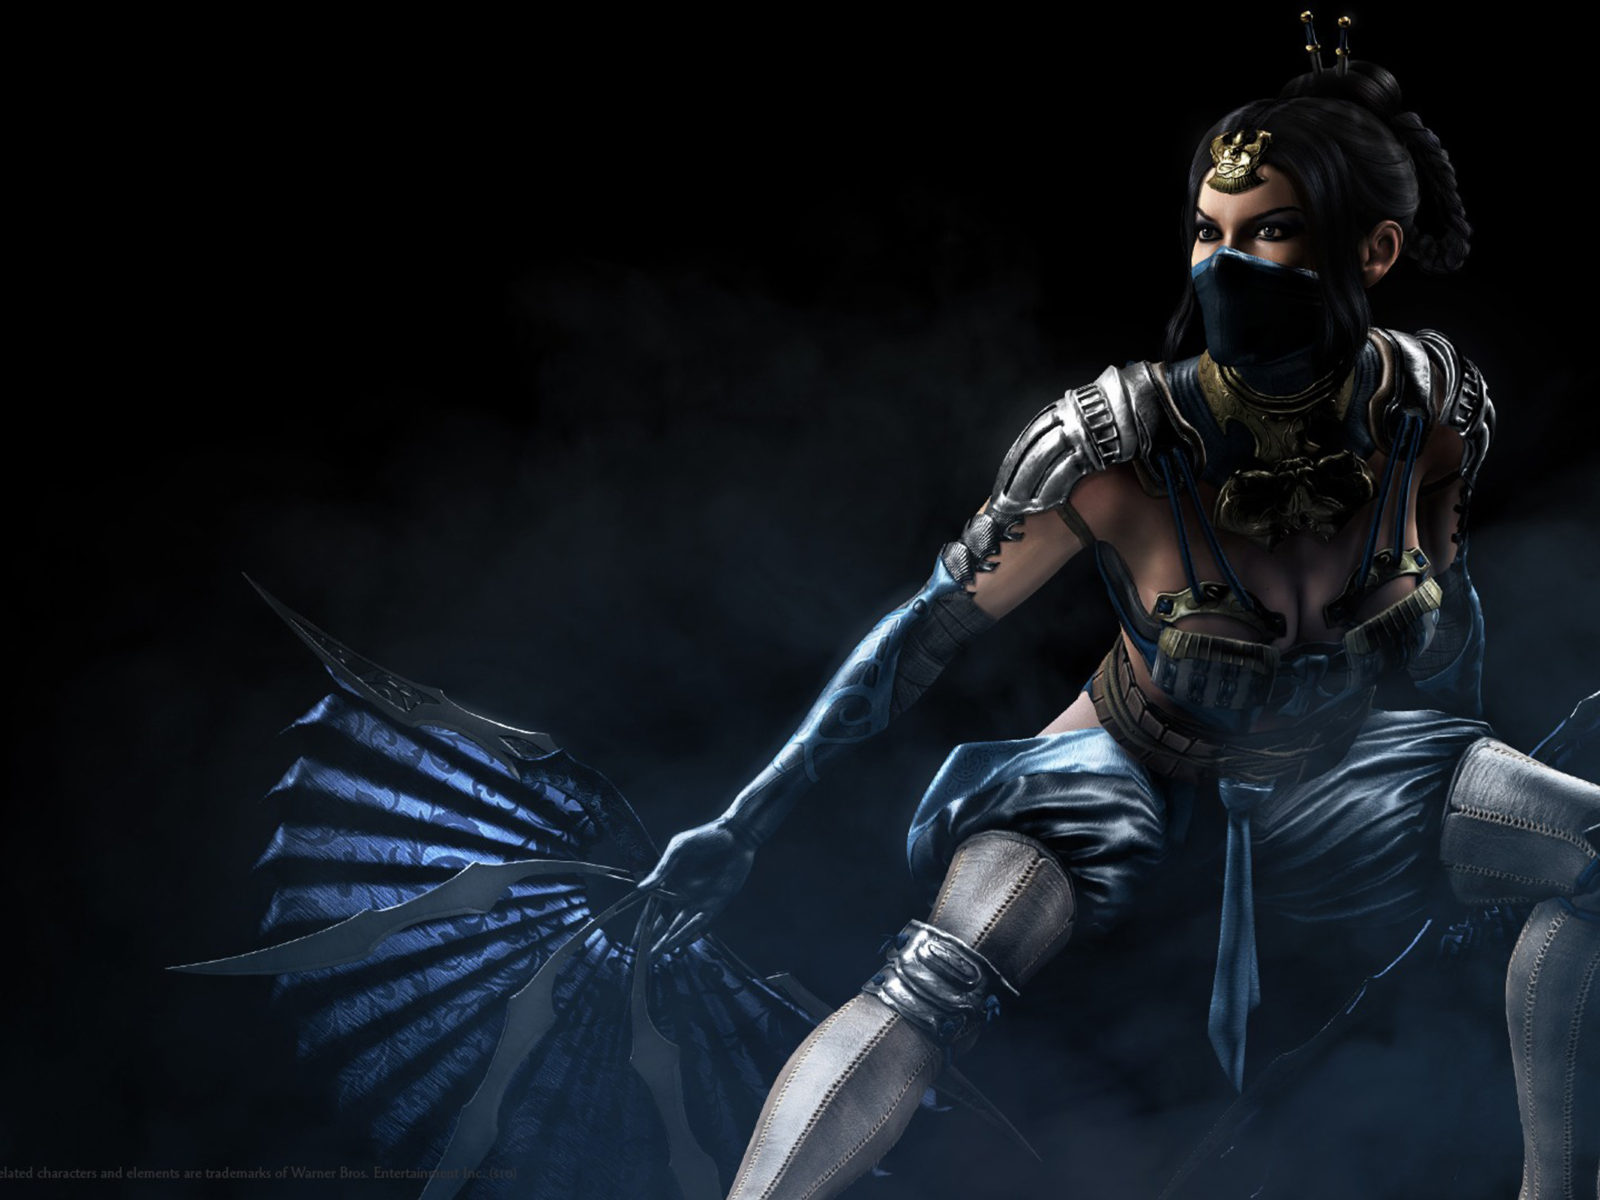 1920x1080 Fantasy Girl Wallpaper Mortal Kombat X Trailer Reveals Kitana And Kung La Yrzp